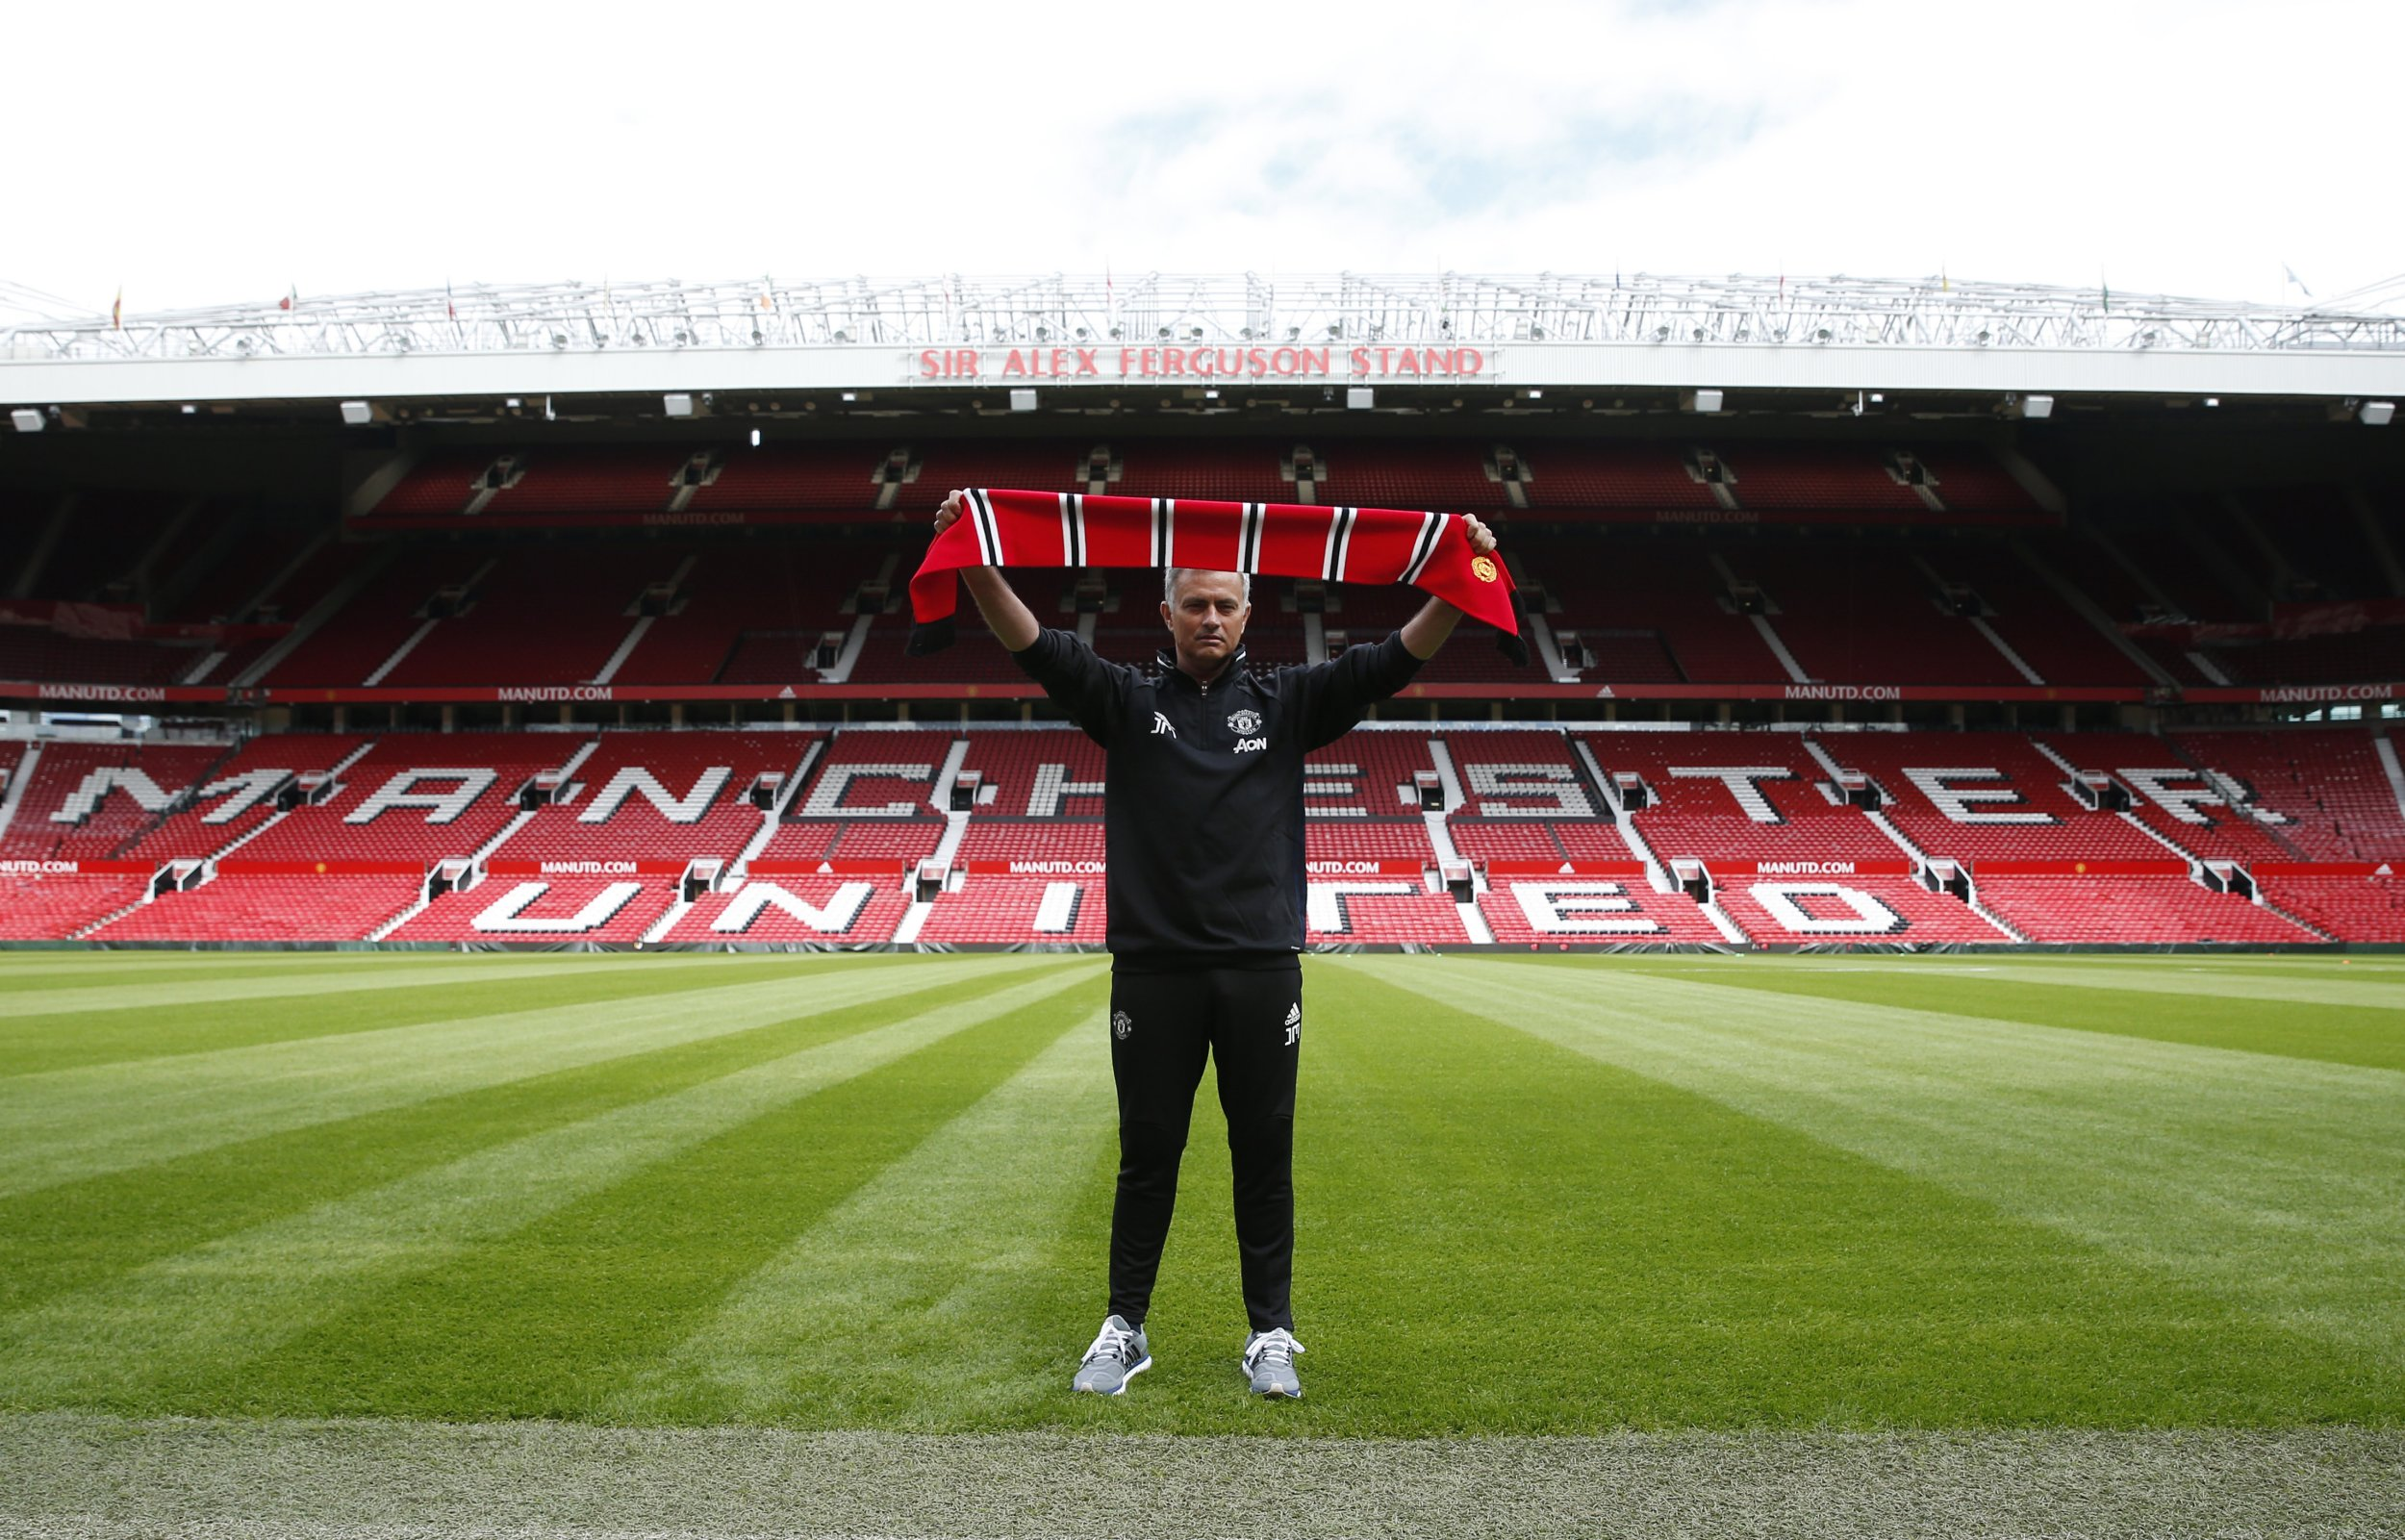 Britain Football Soccer - Manchester United - Jose Mourinho Press Conference - Old Trafford - 5/7/16 New Manchester United manager Jose Mourinho poses ahead of the press conference REUTERS/Andrew Yates Livepic EDITORIAL USE ONLY.